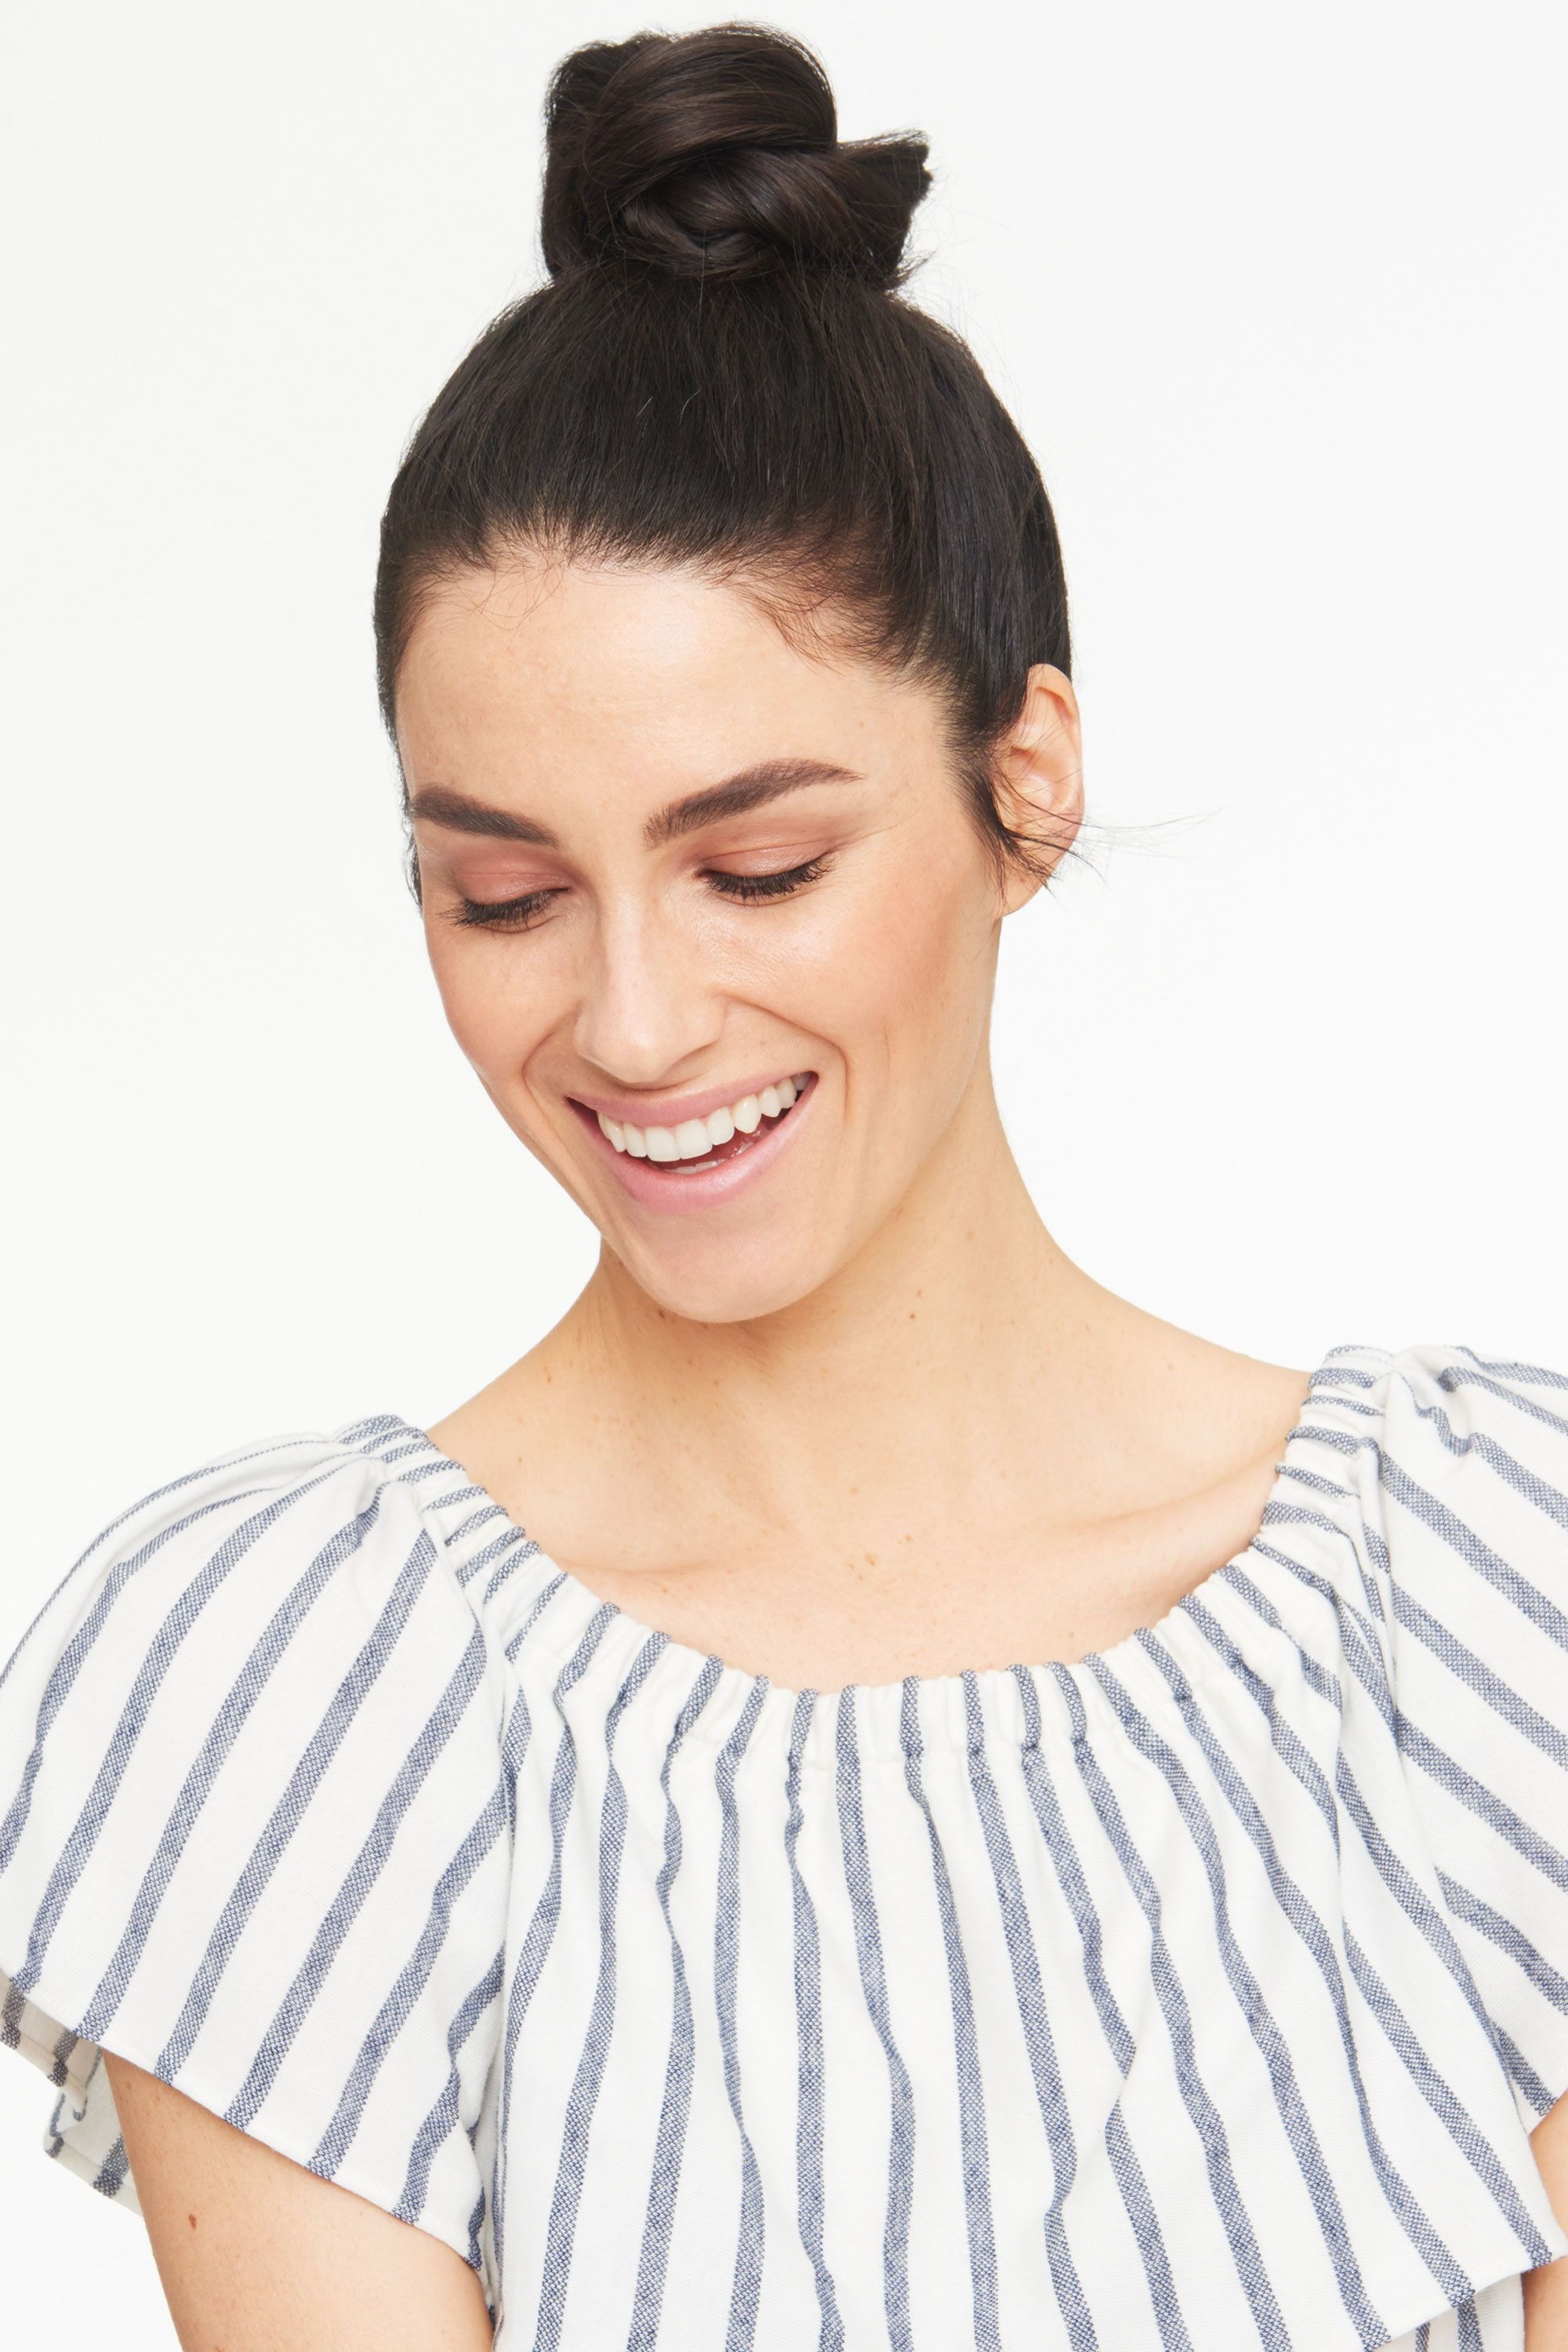 """<p>To get even more out of this yoga-to-brunch look, apply a nourishing damage repair treatment like <a href=""""http://bit.ly/1UCWqHM"""" target=""""_blank"""">Suave Coconut Oil Infusion Oil Treatment</a> before brushing your strands up into a high ponytail. Then, split the tail in half and twist the sections to create a rope-like texture. Wrap the tail around itself on top of your head and stick in u-shaped pins to keep it in place. </p><p><em></em></p>"""